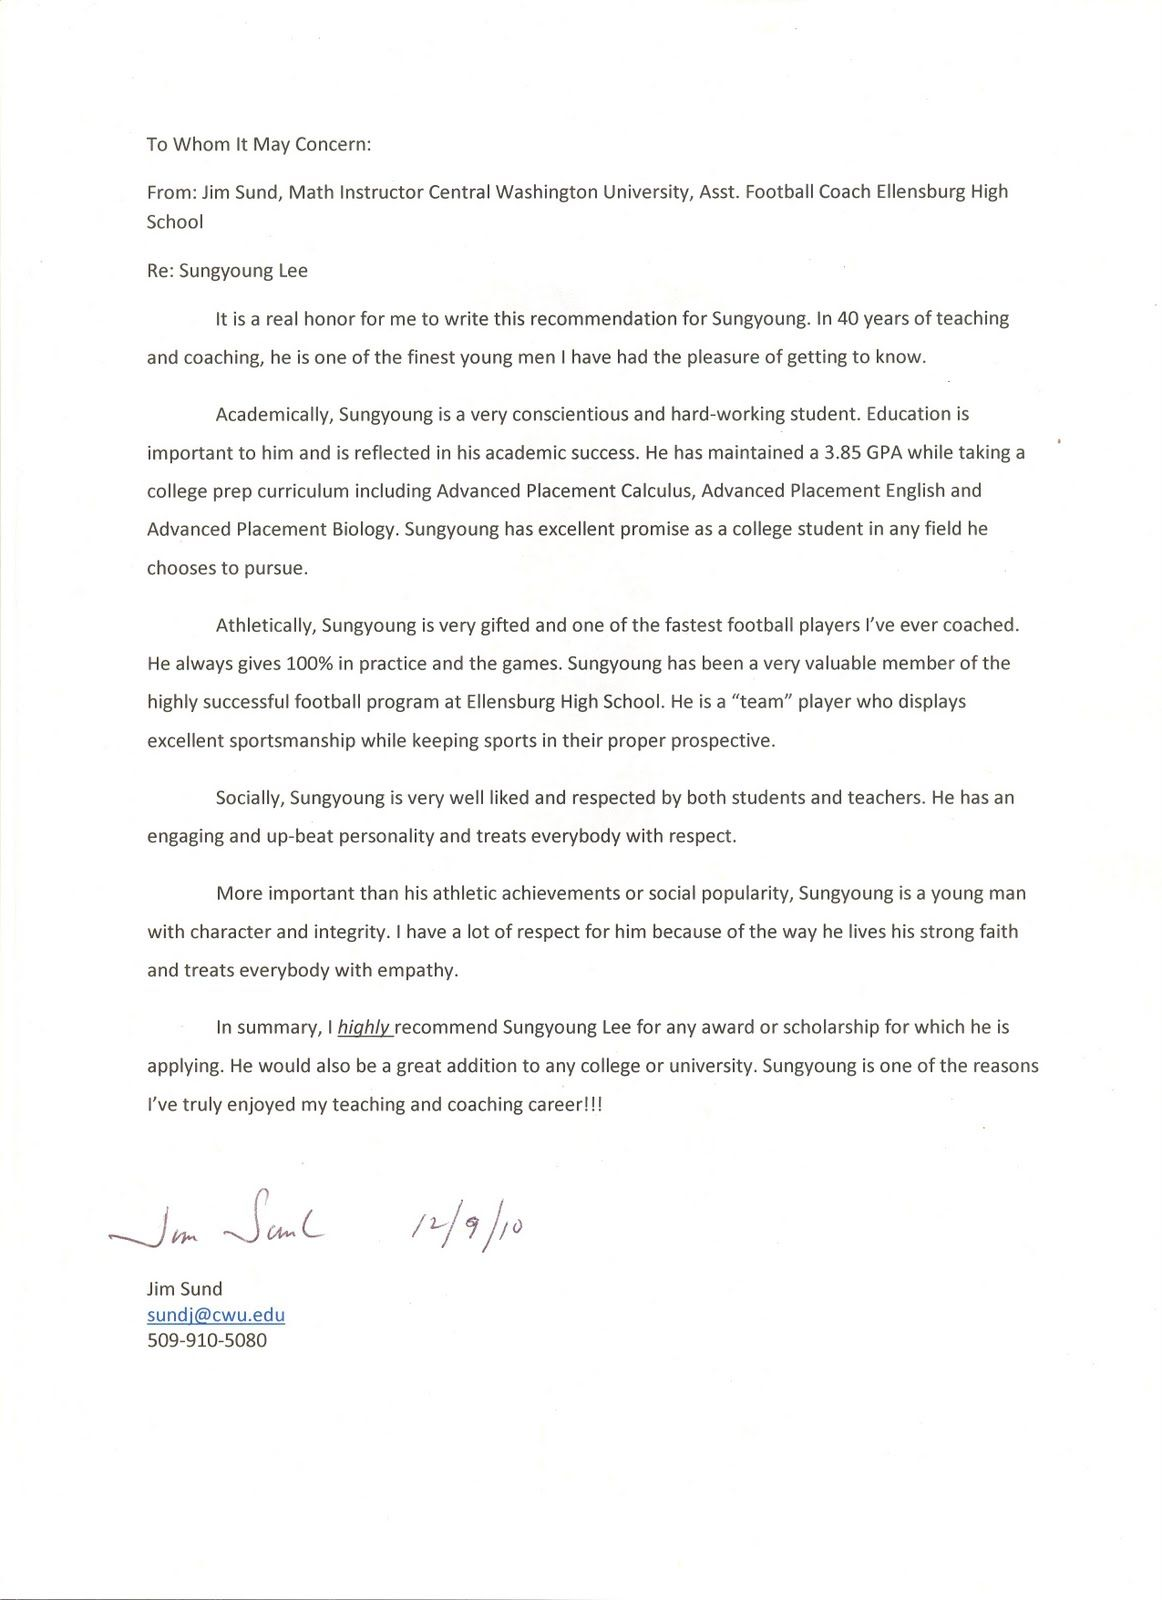 eagle scout letter of recommendation -